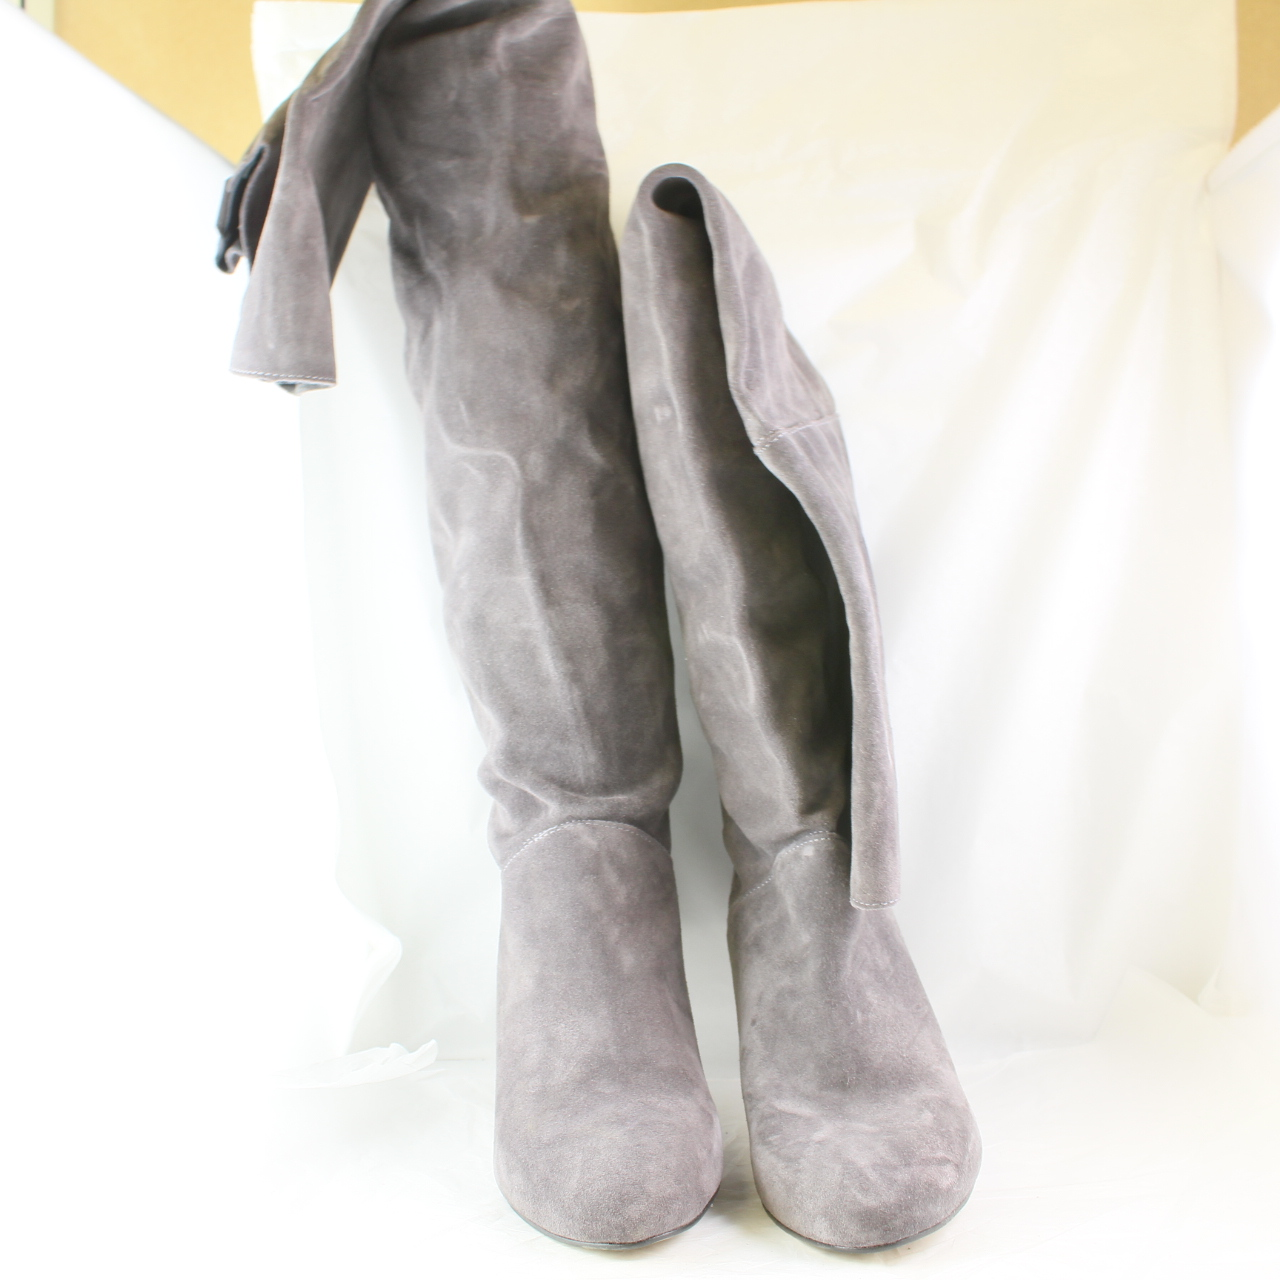 Sentinel Womens Office Nouveau 2 Thigh High Grey Suede Knee Boots Uk Size 5 Ex Display